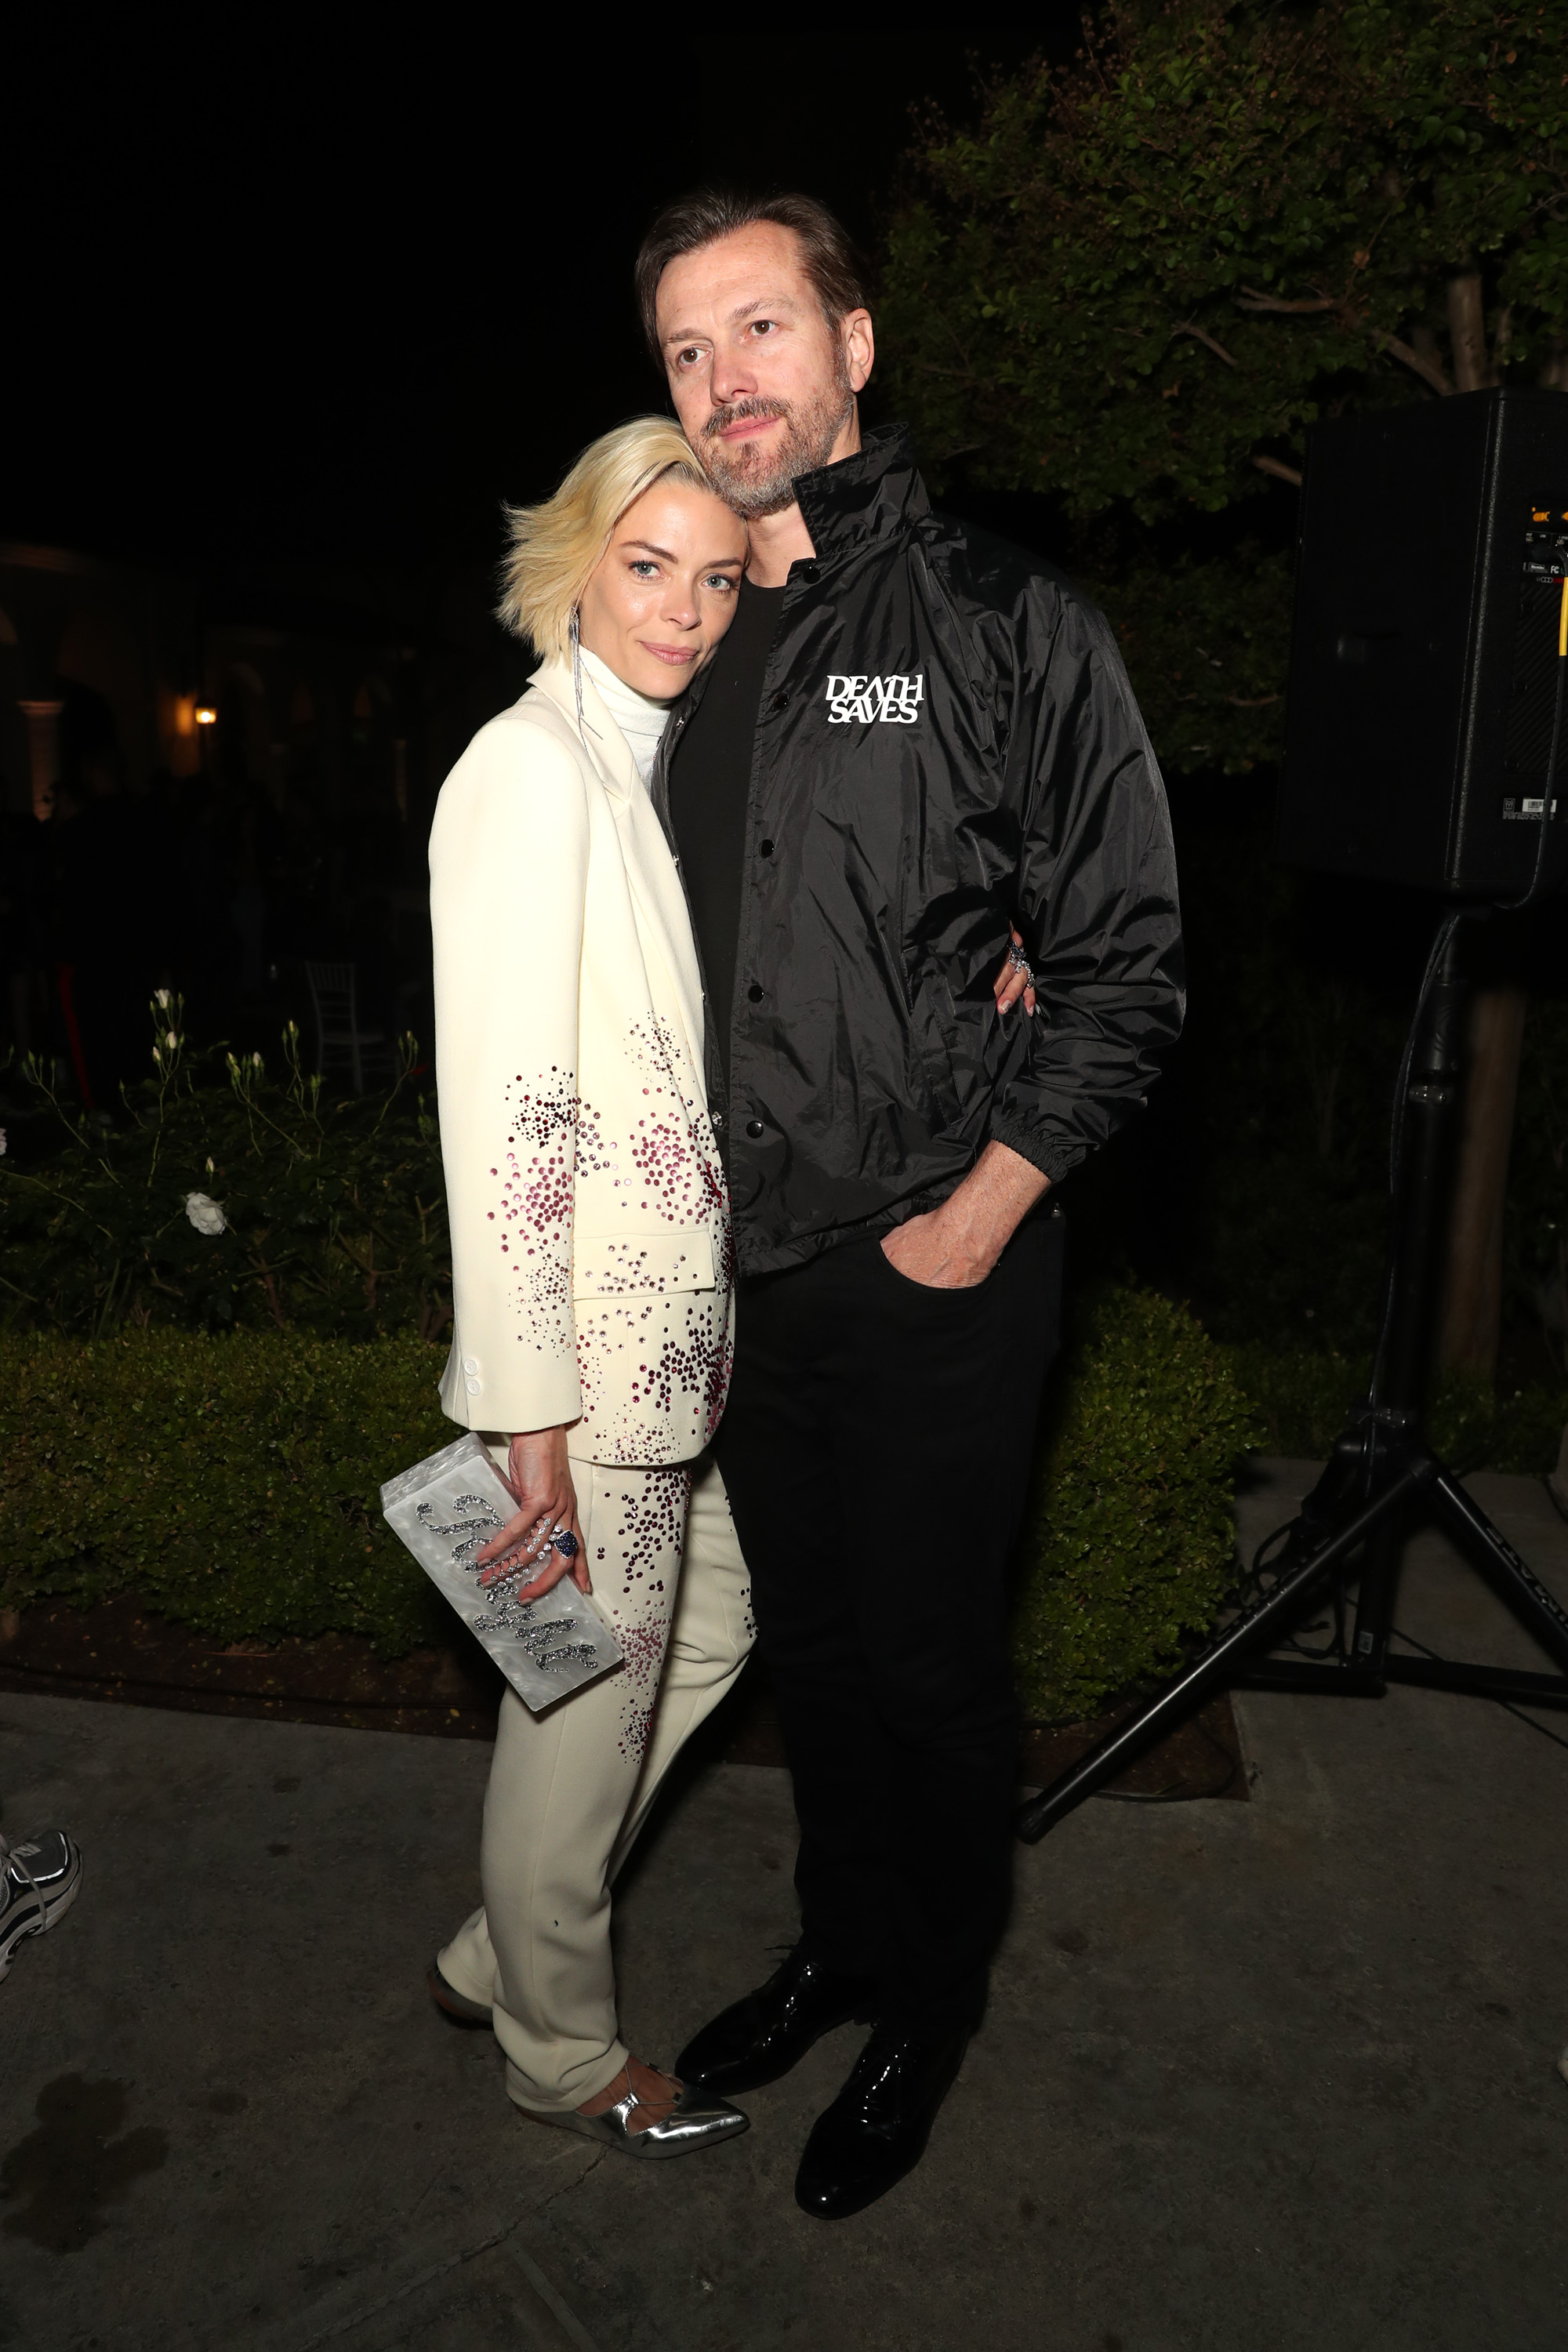 Jaime King and Kyle NewmanLibertine show, After Party, Fall Winter 2019, The Ebell, Los Angeles, USA - 26 Apr 2019